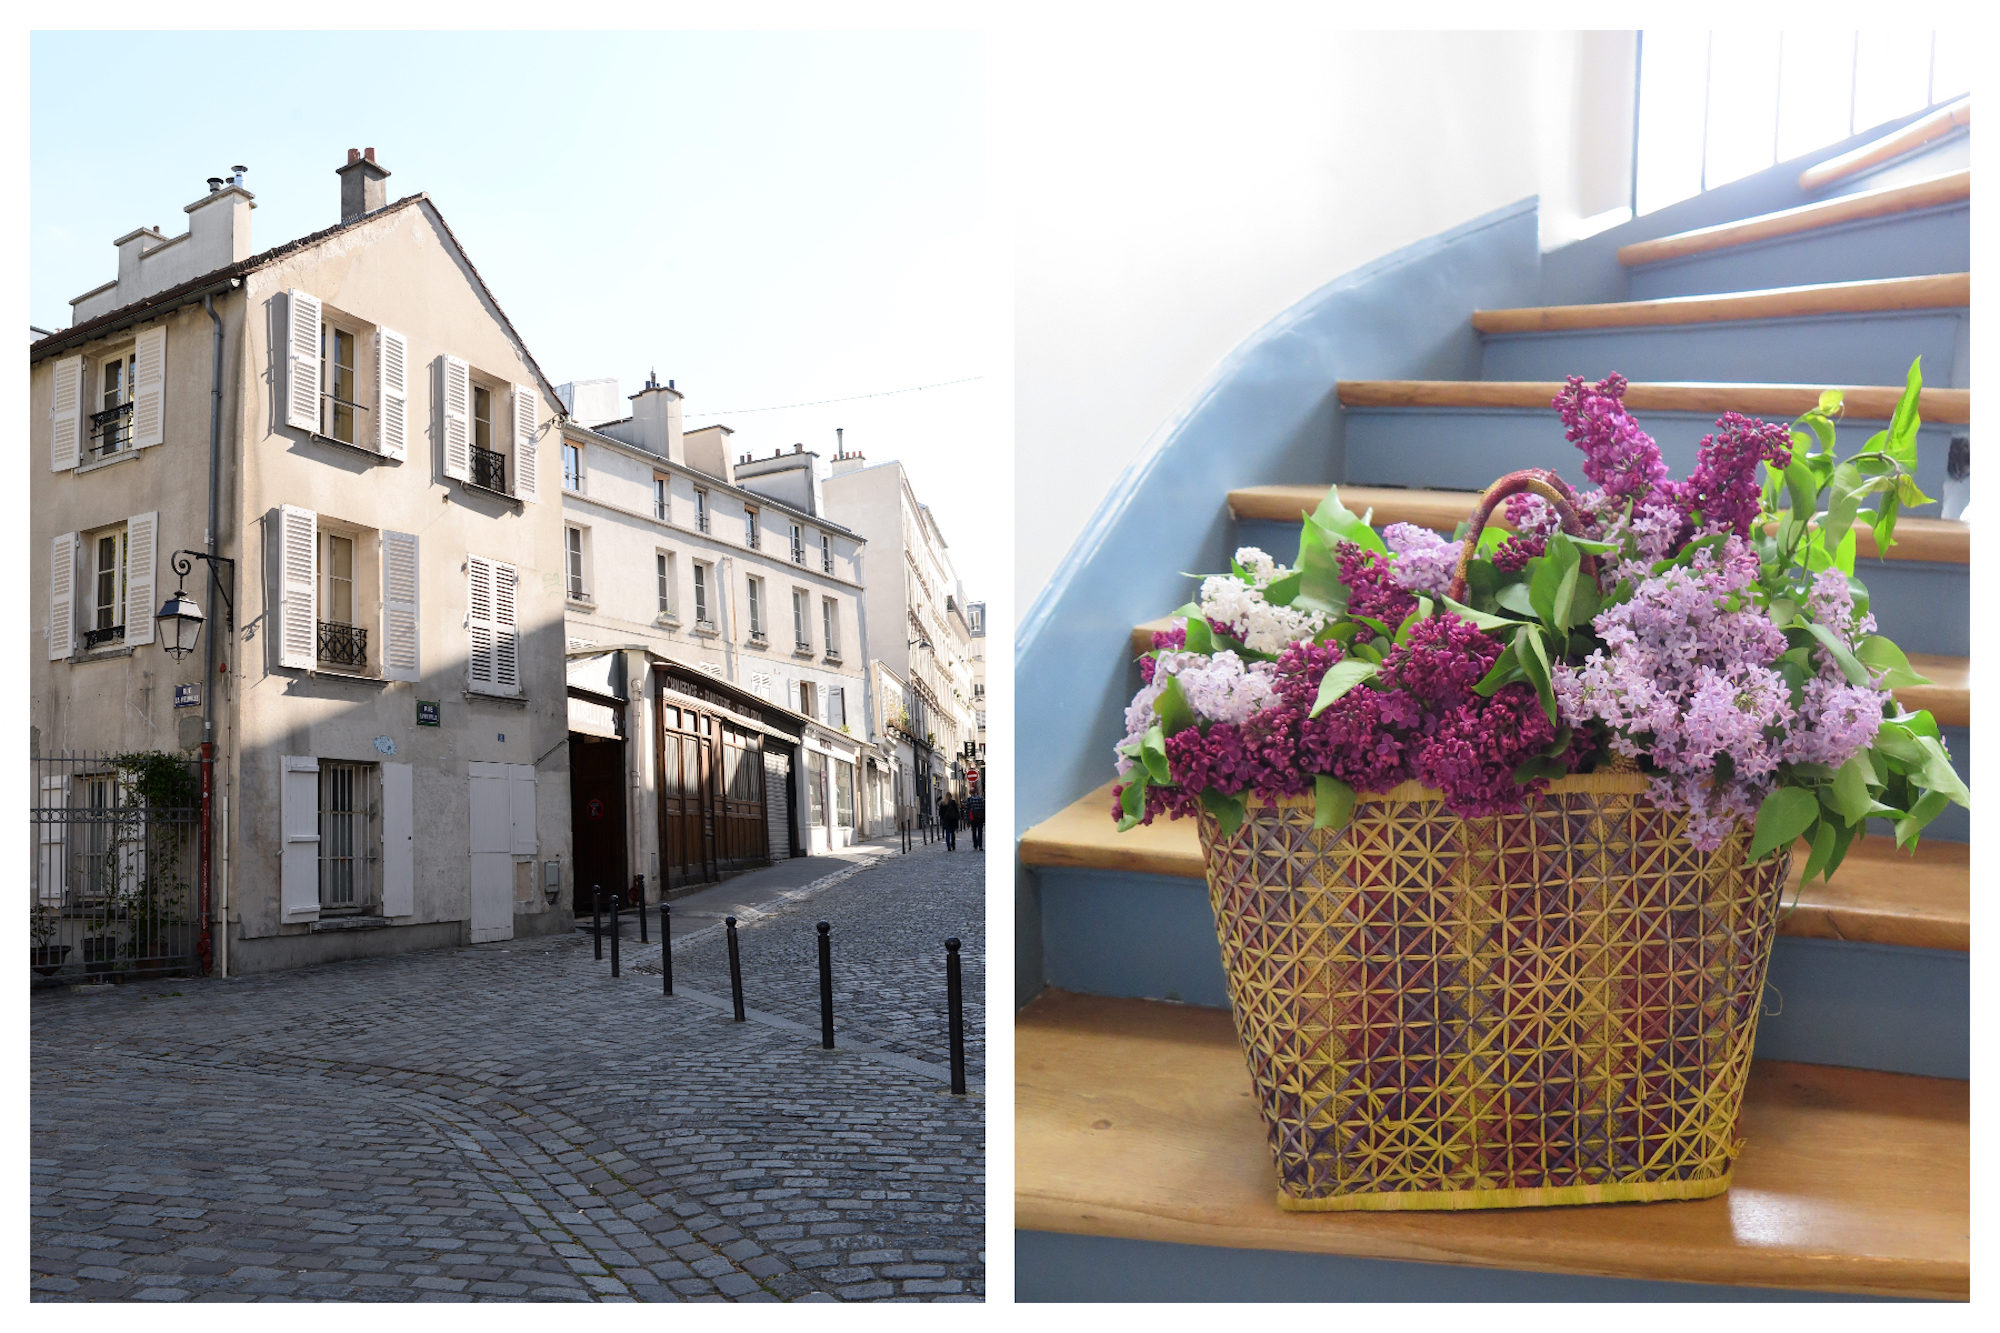 An old house on a cobblestone street in Montmartre in Paris, near the wall of I love yous (left). A basket of beautiful fuchsia and lilac flowers set on a wooden staircase inside a Parisian apartment building (right).